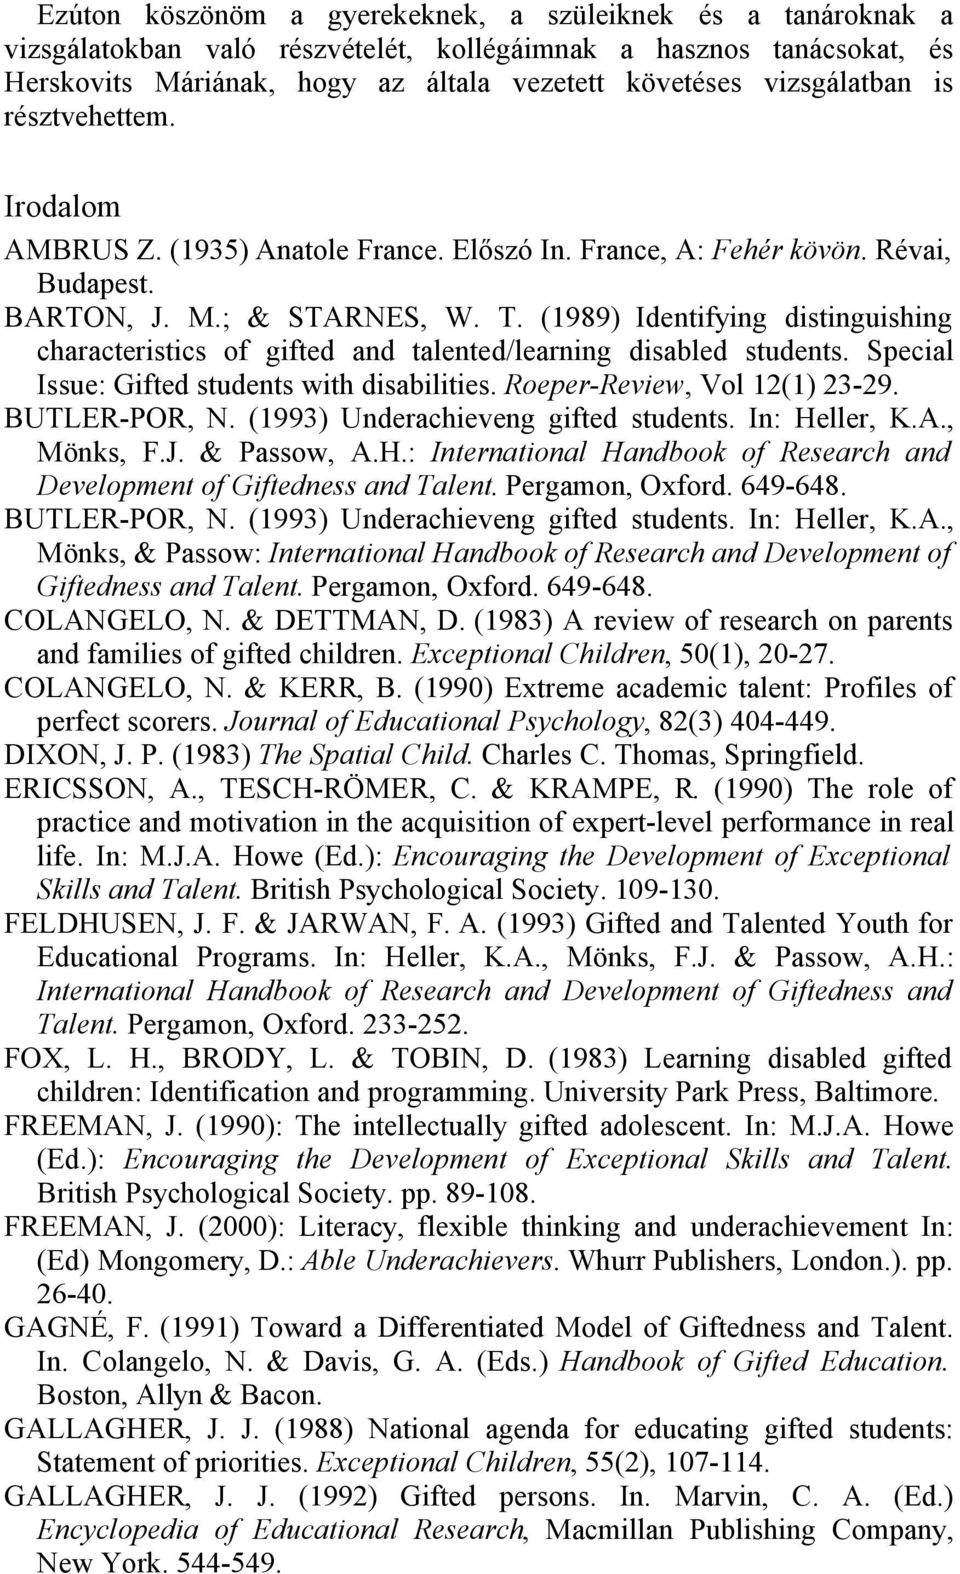 (1989) Identifying distinguishing characteristics of gifted and talented/learning disabled students. Special Issue: Gifted students with disabilities. Roeper-Review, Vol 12(1) 23-29. BUTLER-POR, N.